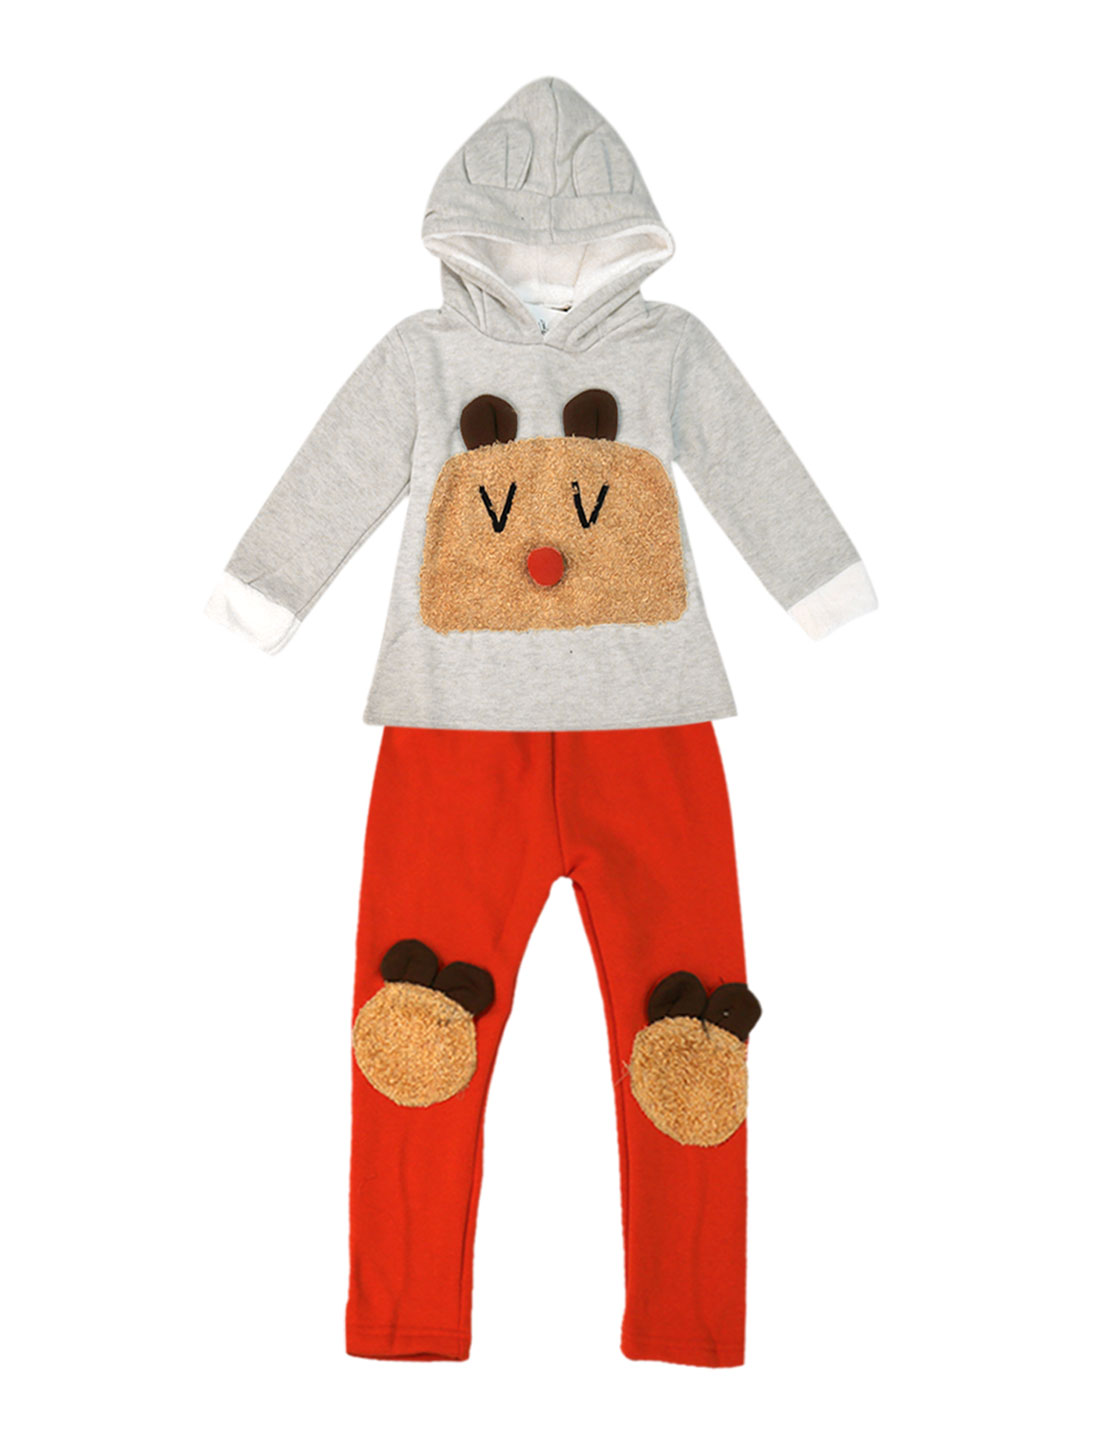 Girls Hooded Tops & Soft Pants 2 Pieces Light Gray Orange Red 4